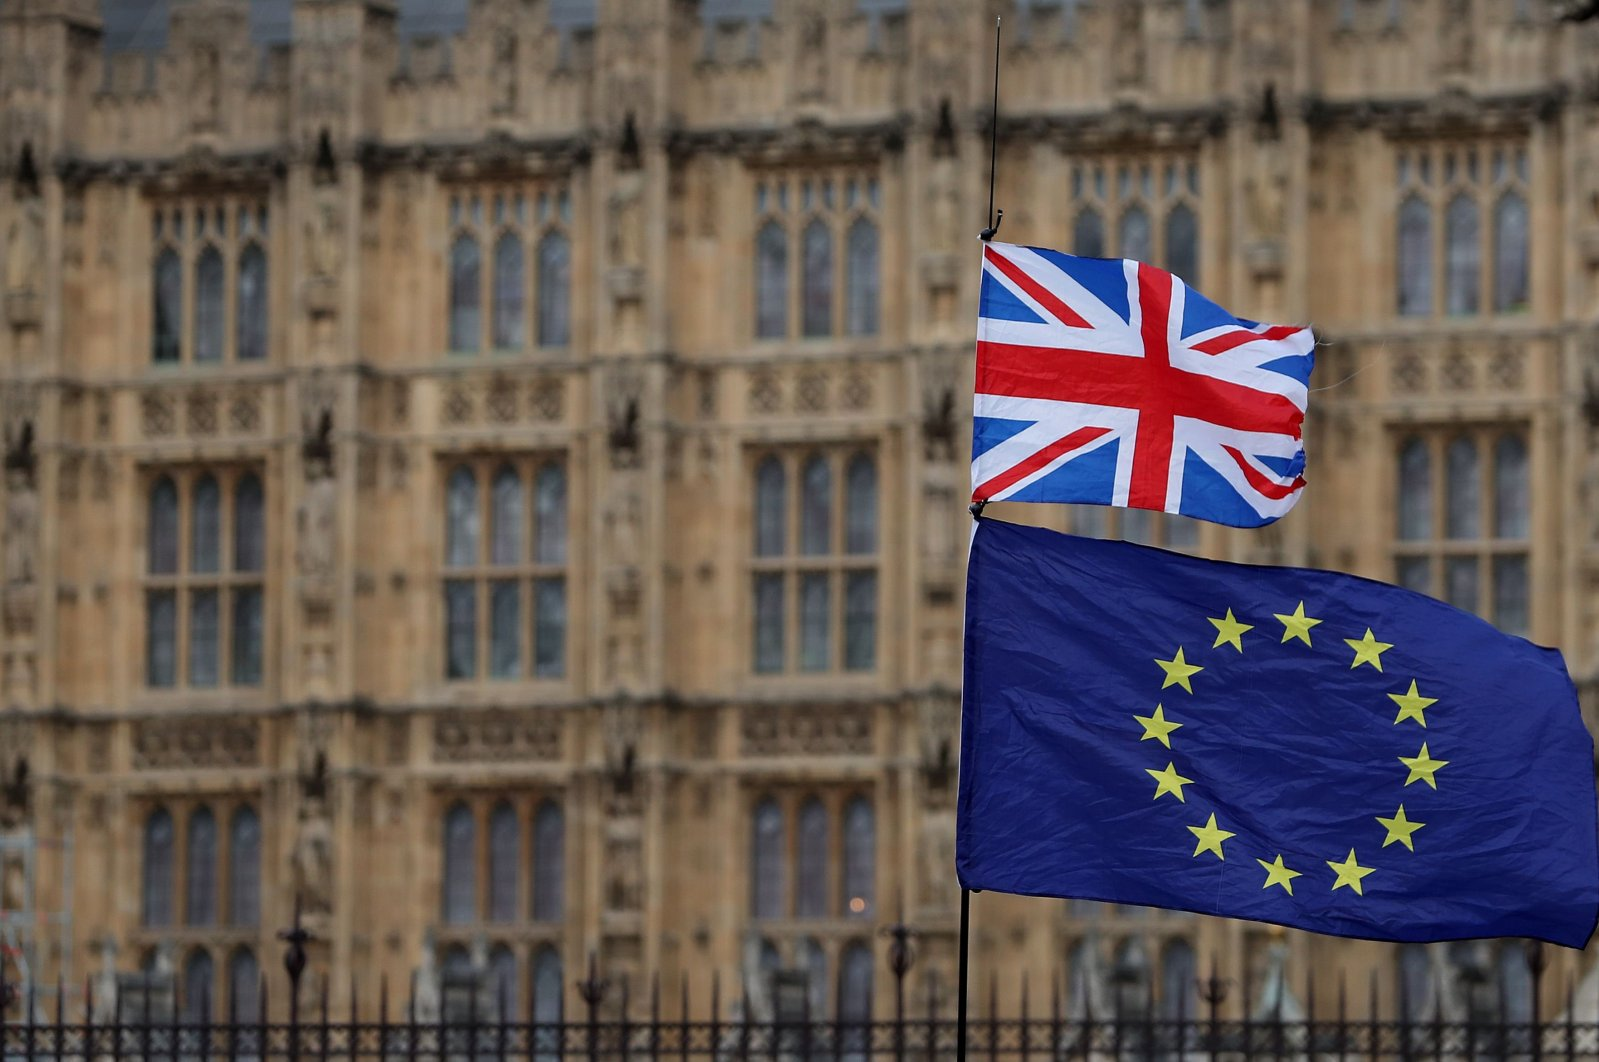 Flags of the U.K. and the European Union wave during a demonstration outside the Houses of Parliament in central London, England, Jan. 23, 2019. (AFP Photo)